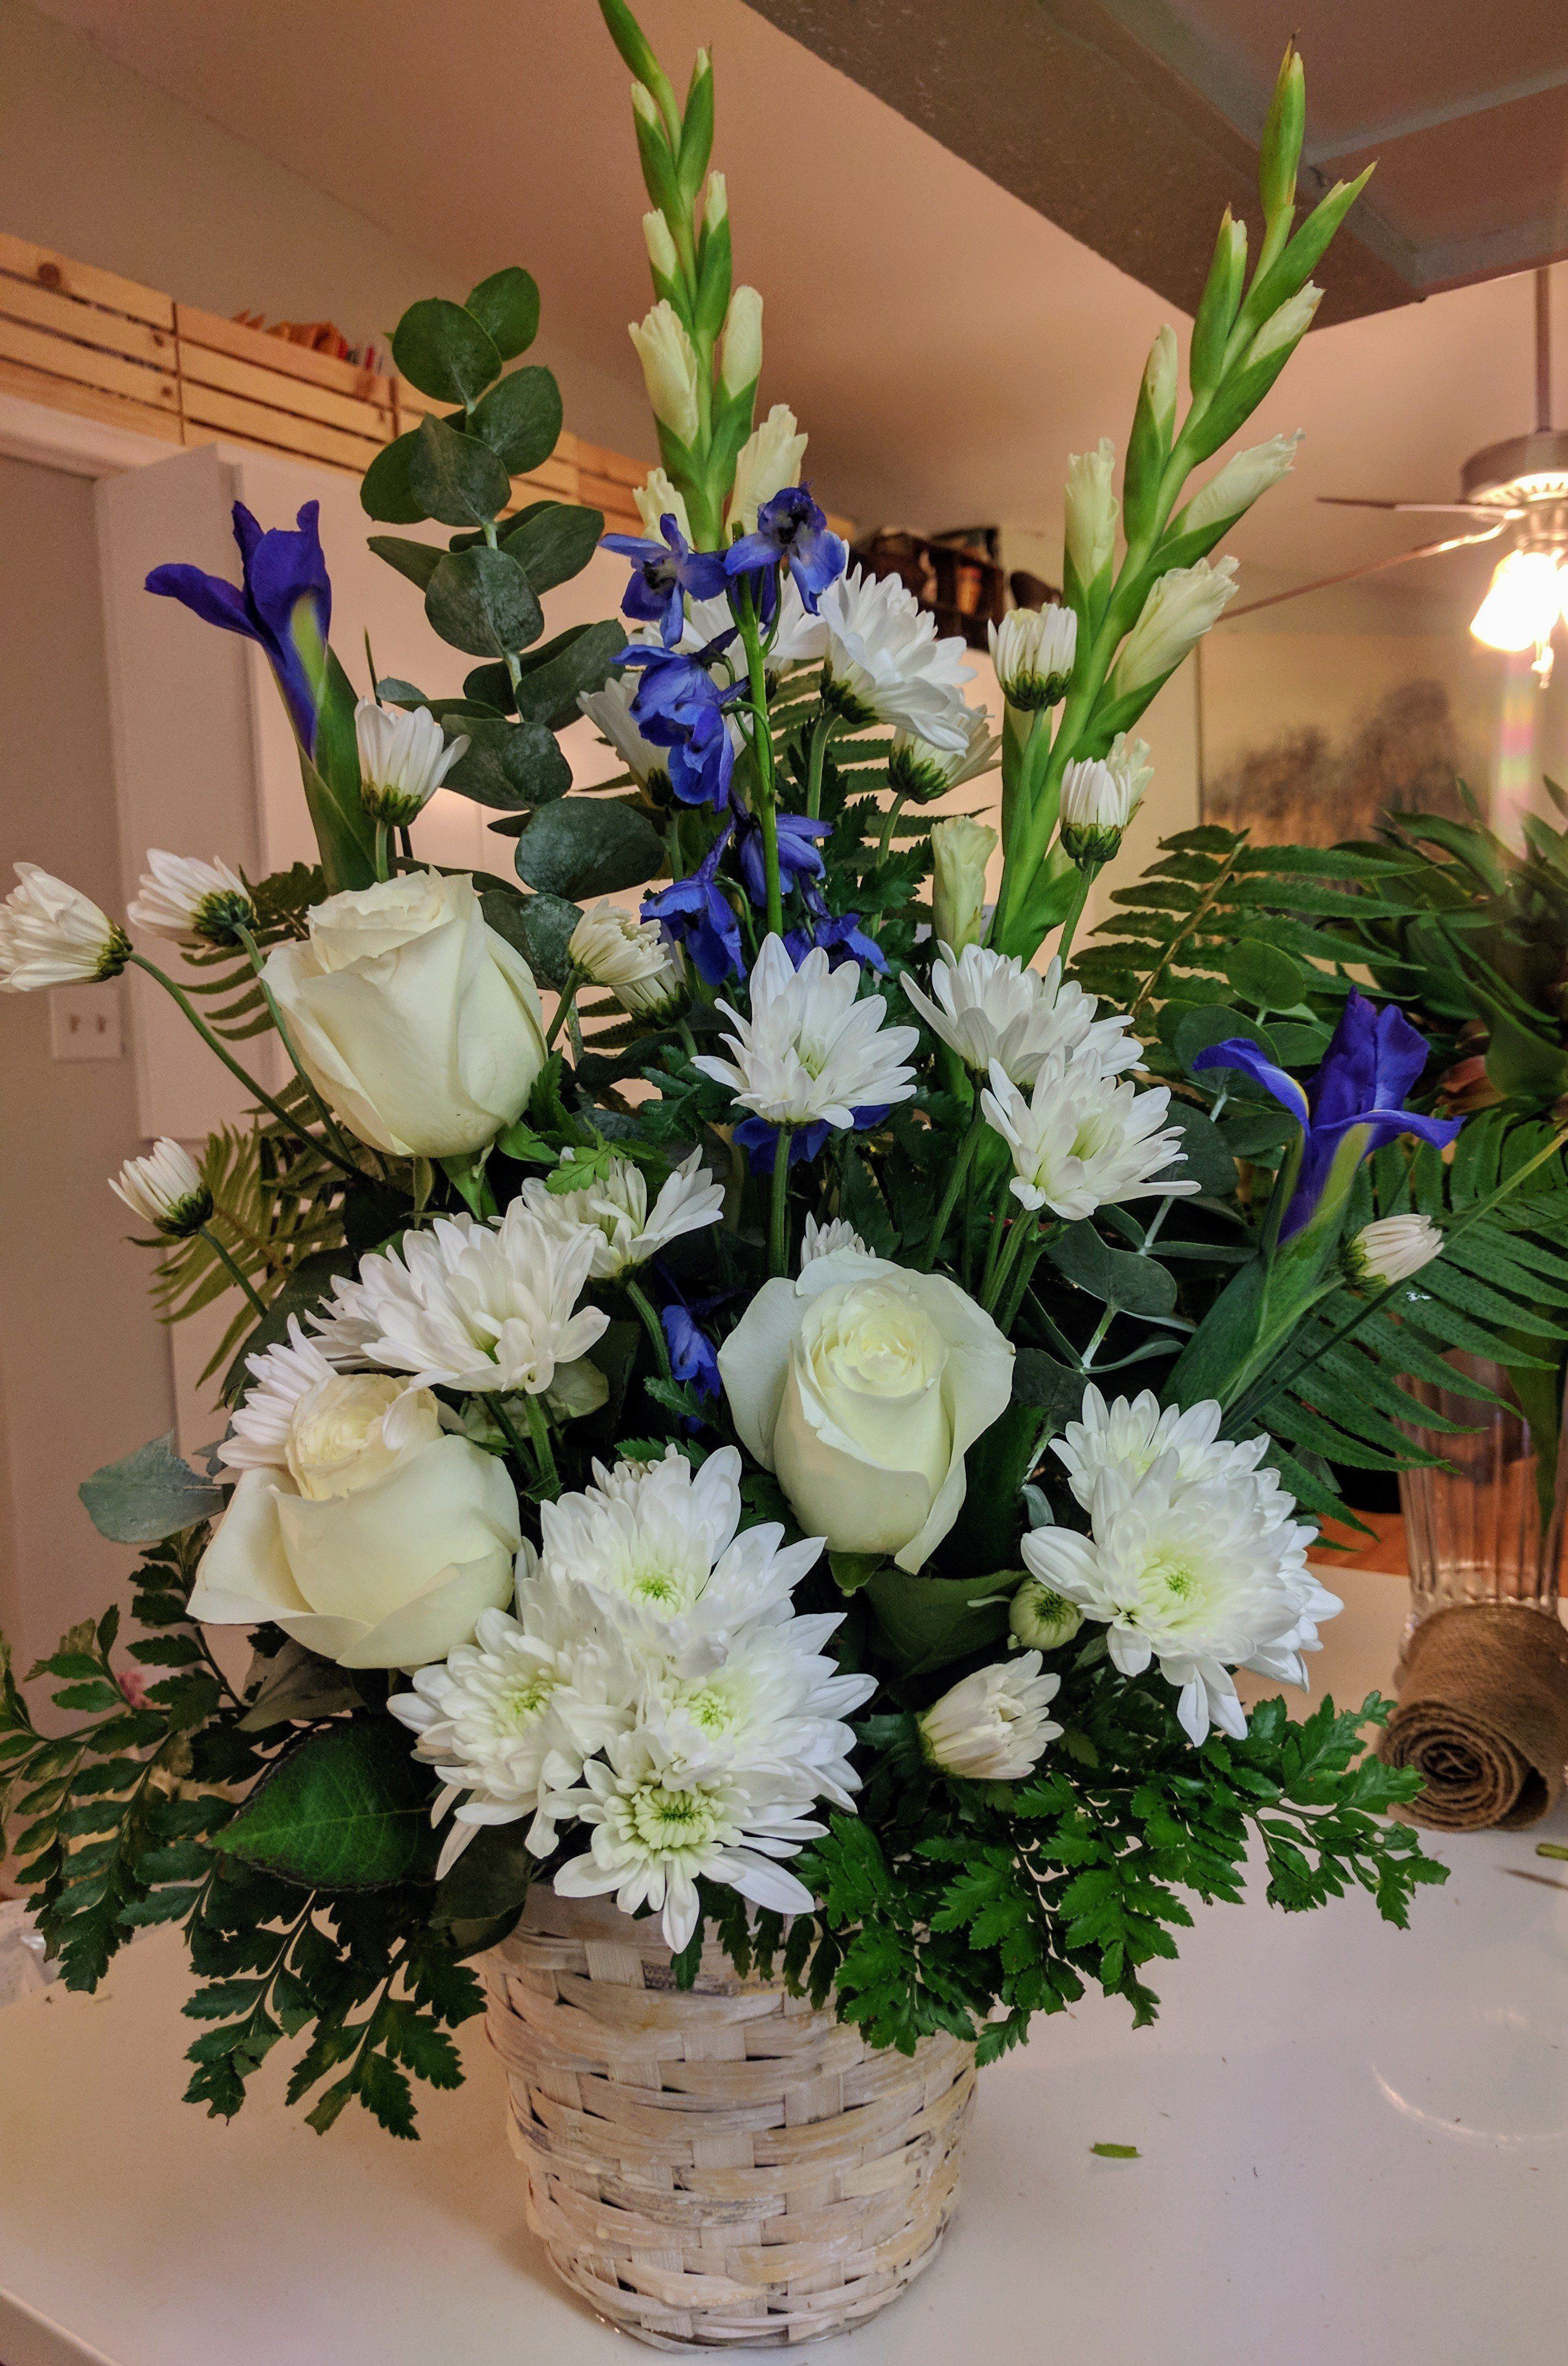 Blue & White Basket Funeral flowers, Sympathy flowers